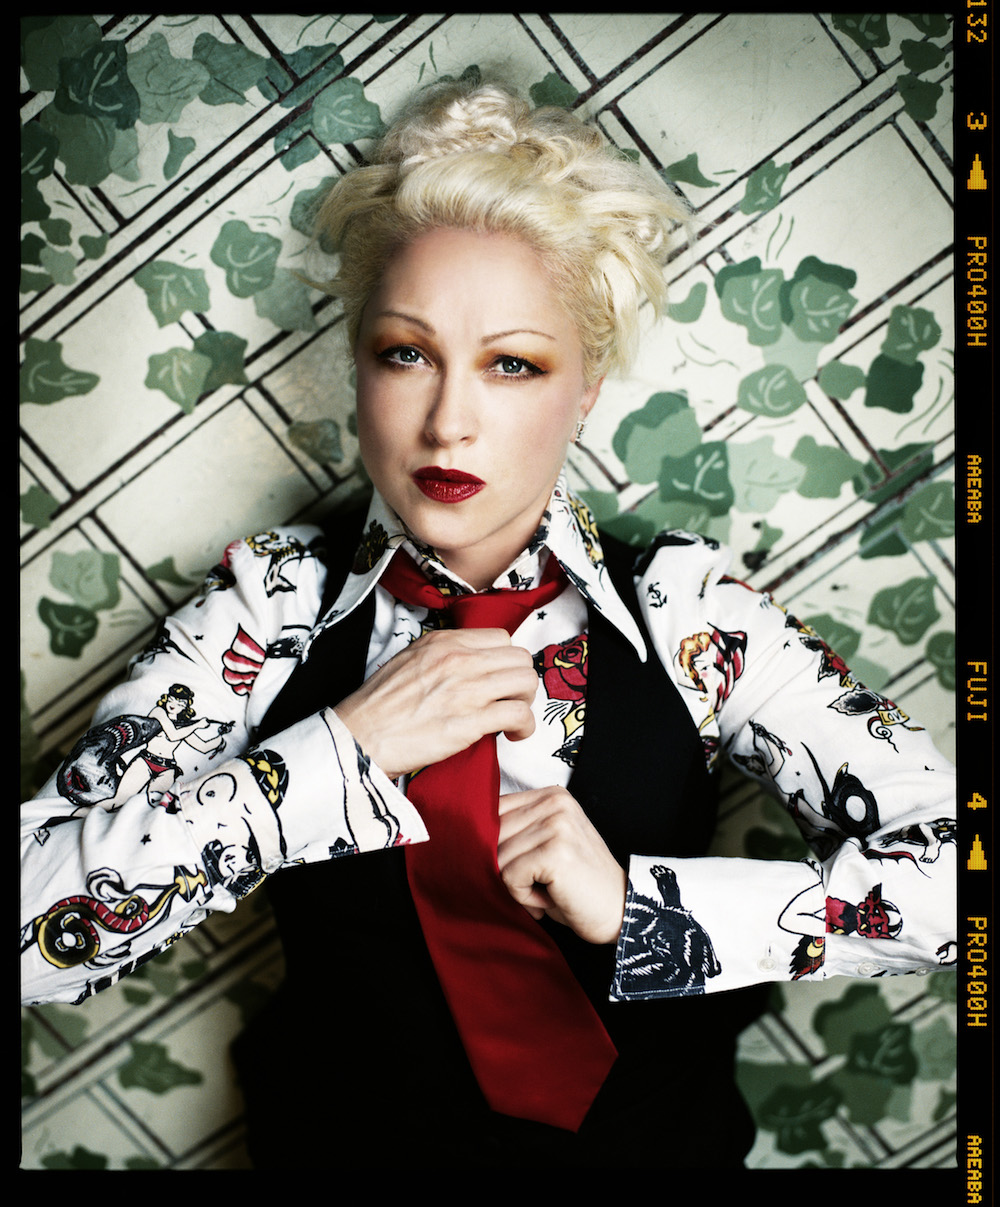 cyndi lauper bring ya to the brink 2